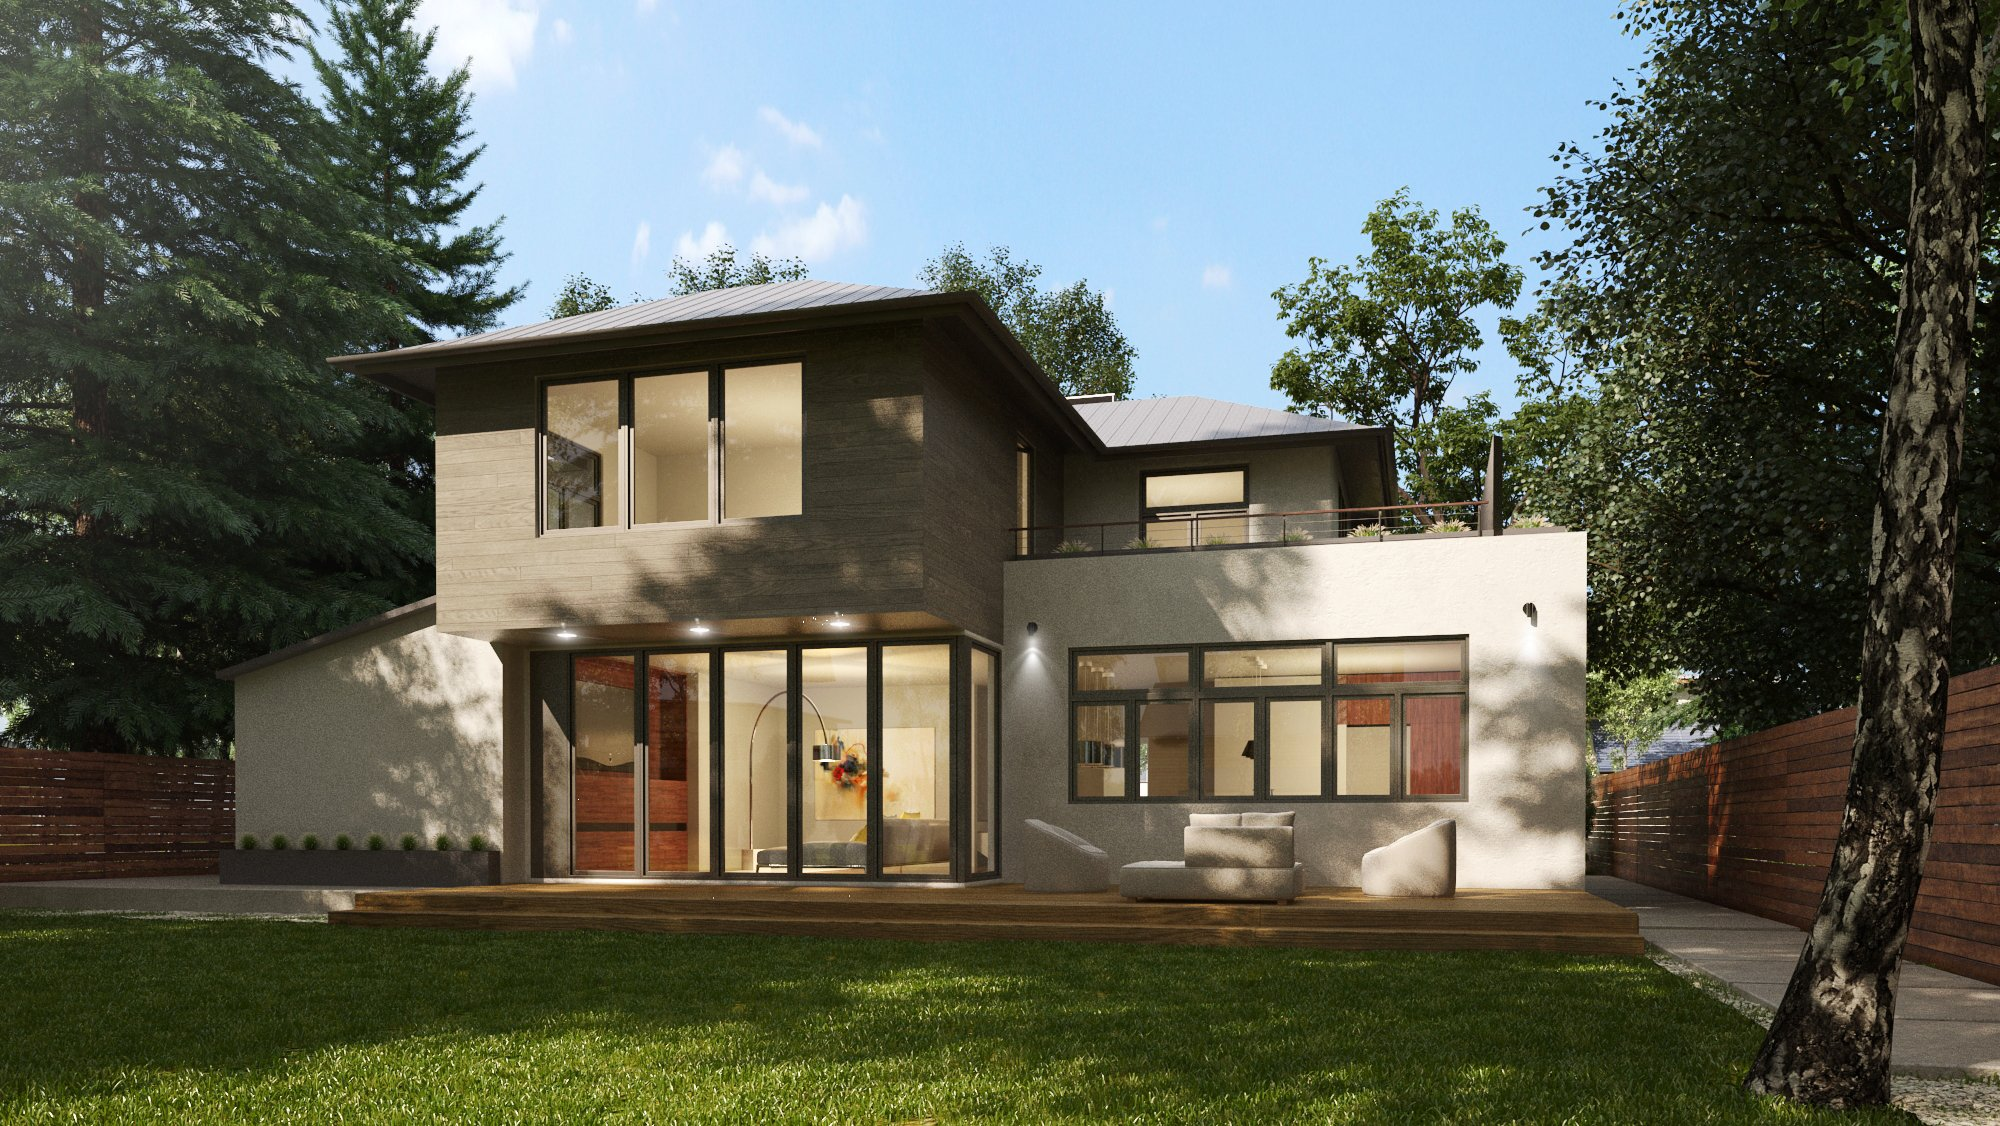 Two story CAD rendering of modern residential remodel